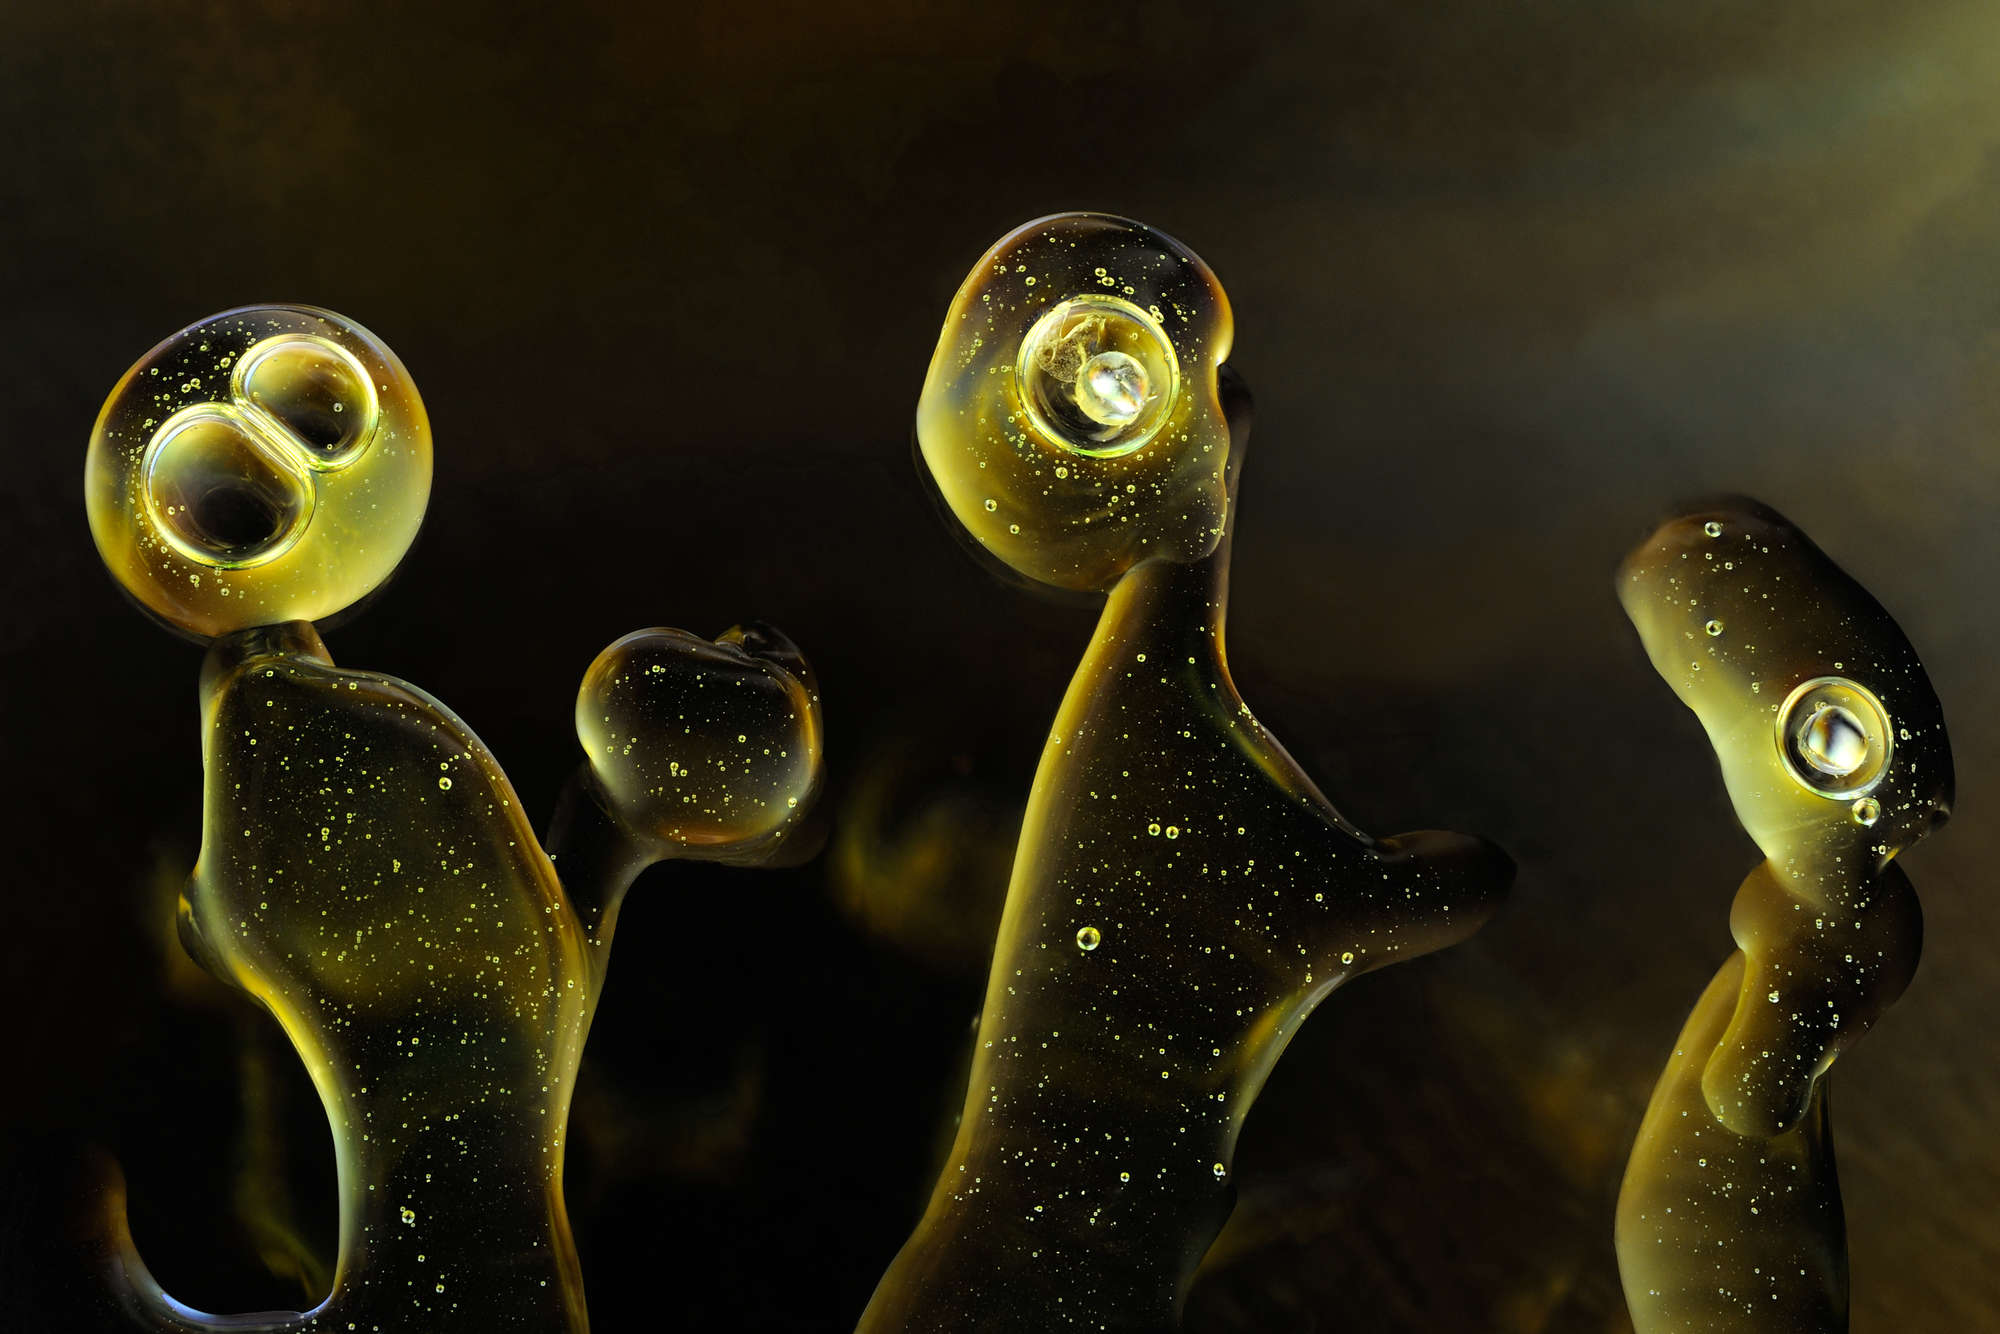 Life Tales - Creatures Collection - Light Forms Art Photography